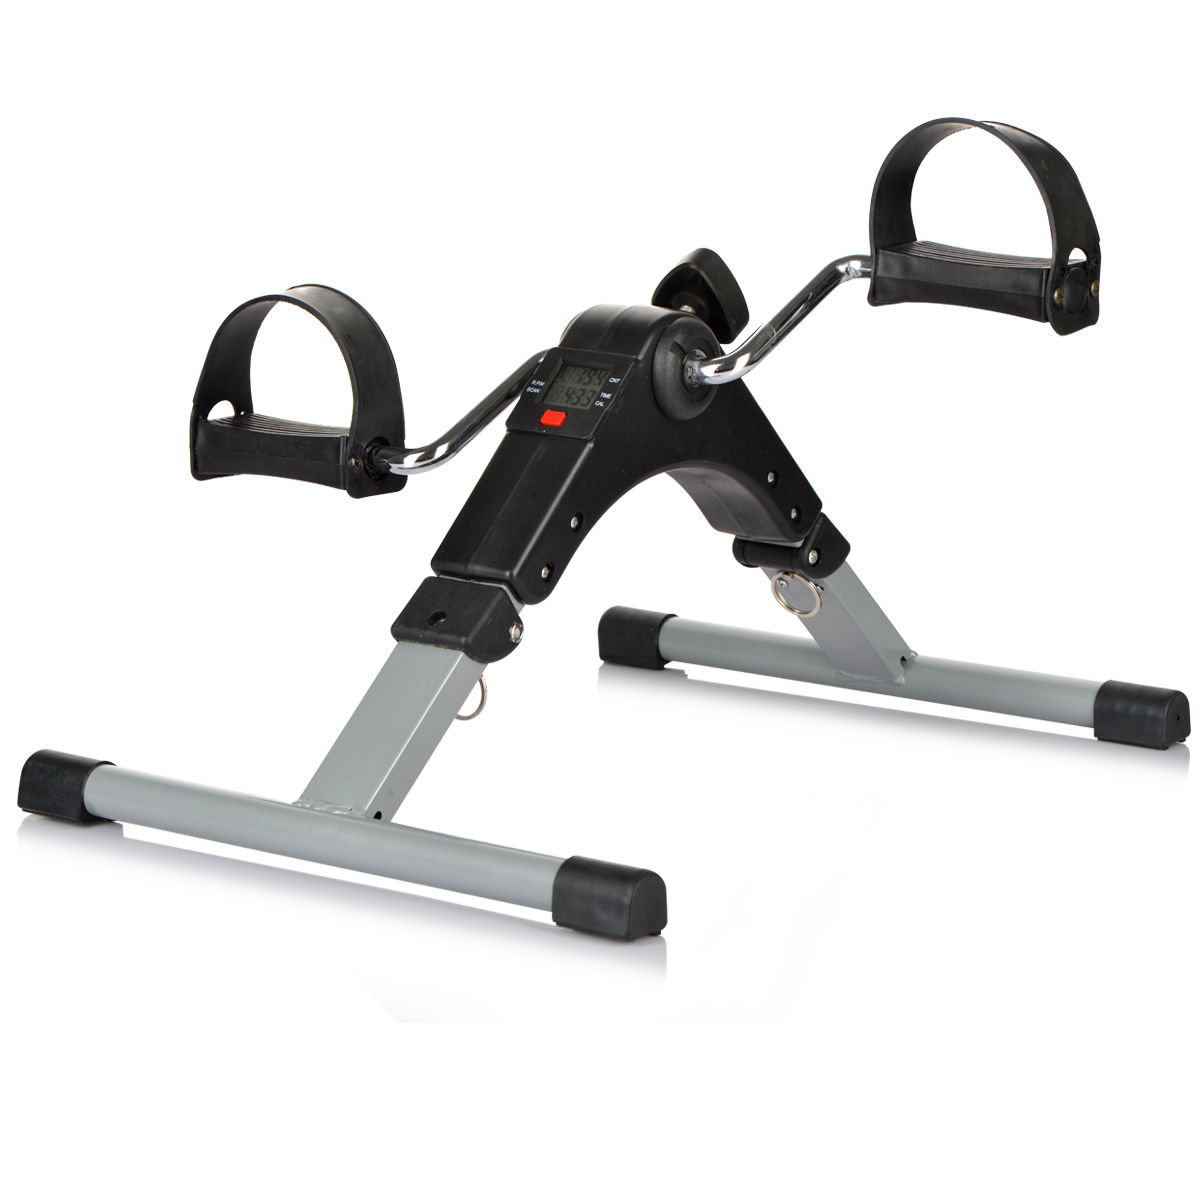 Buy Smart Fitness Cycle Online at Best Price in India on Naaptol.com